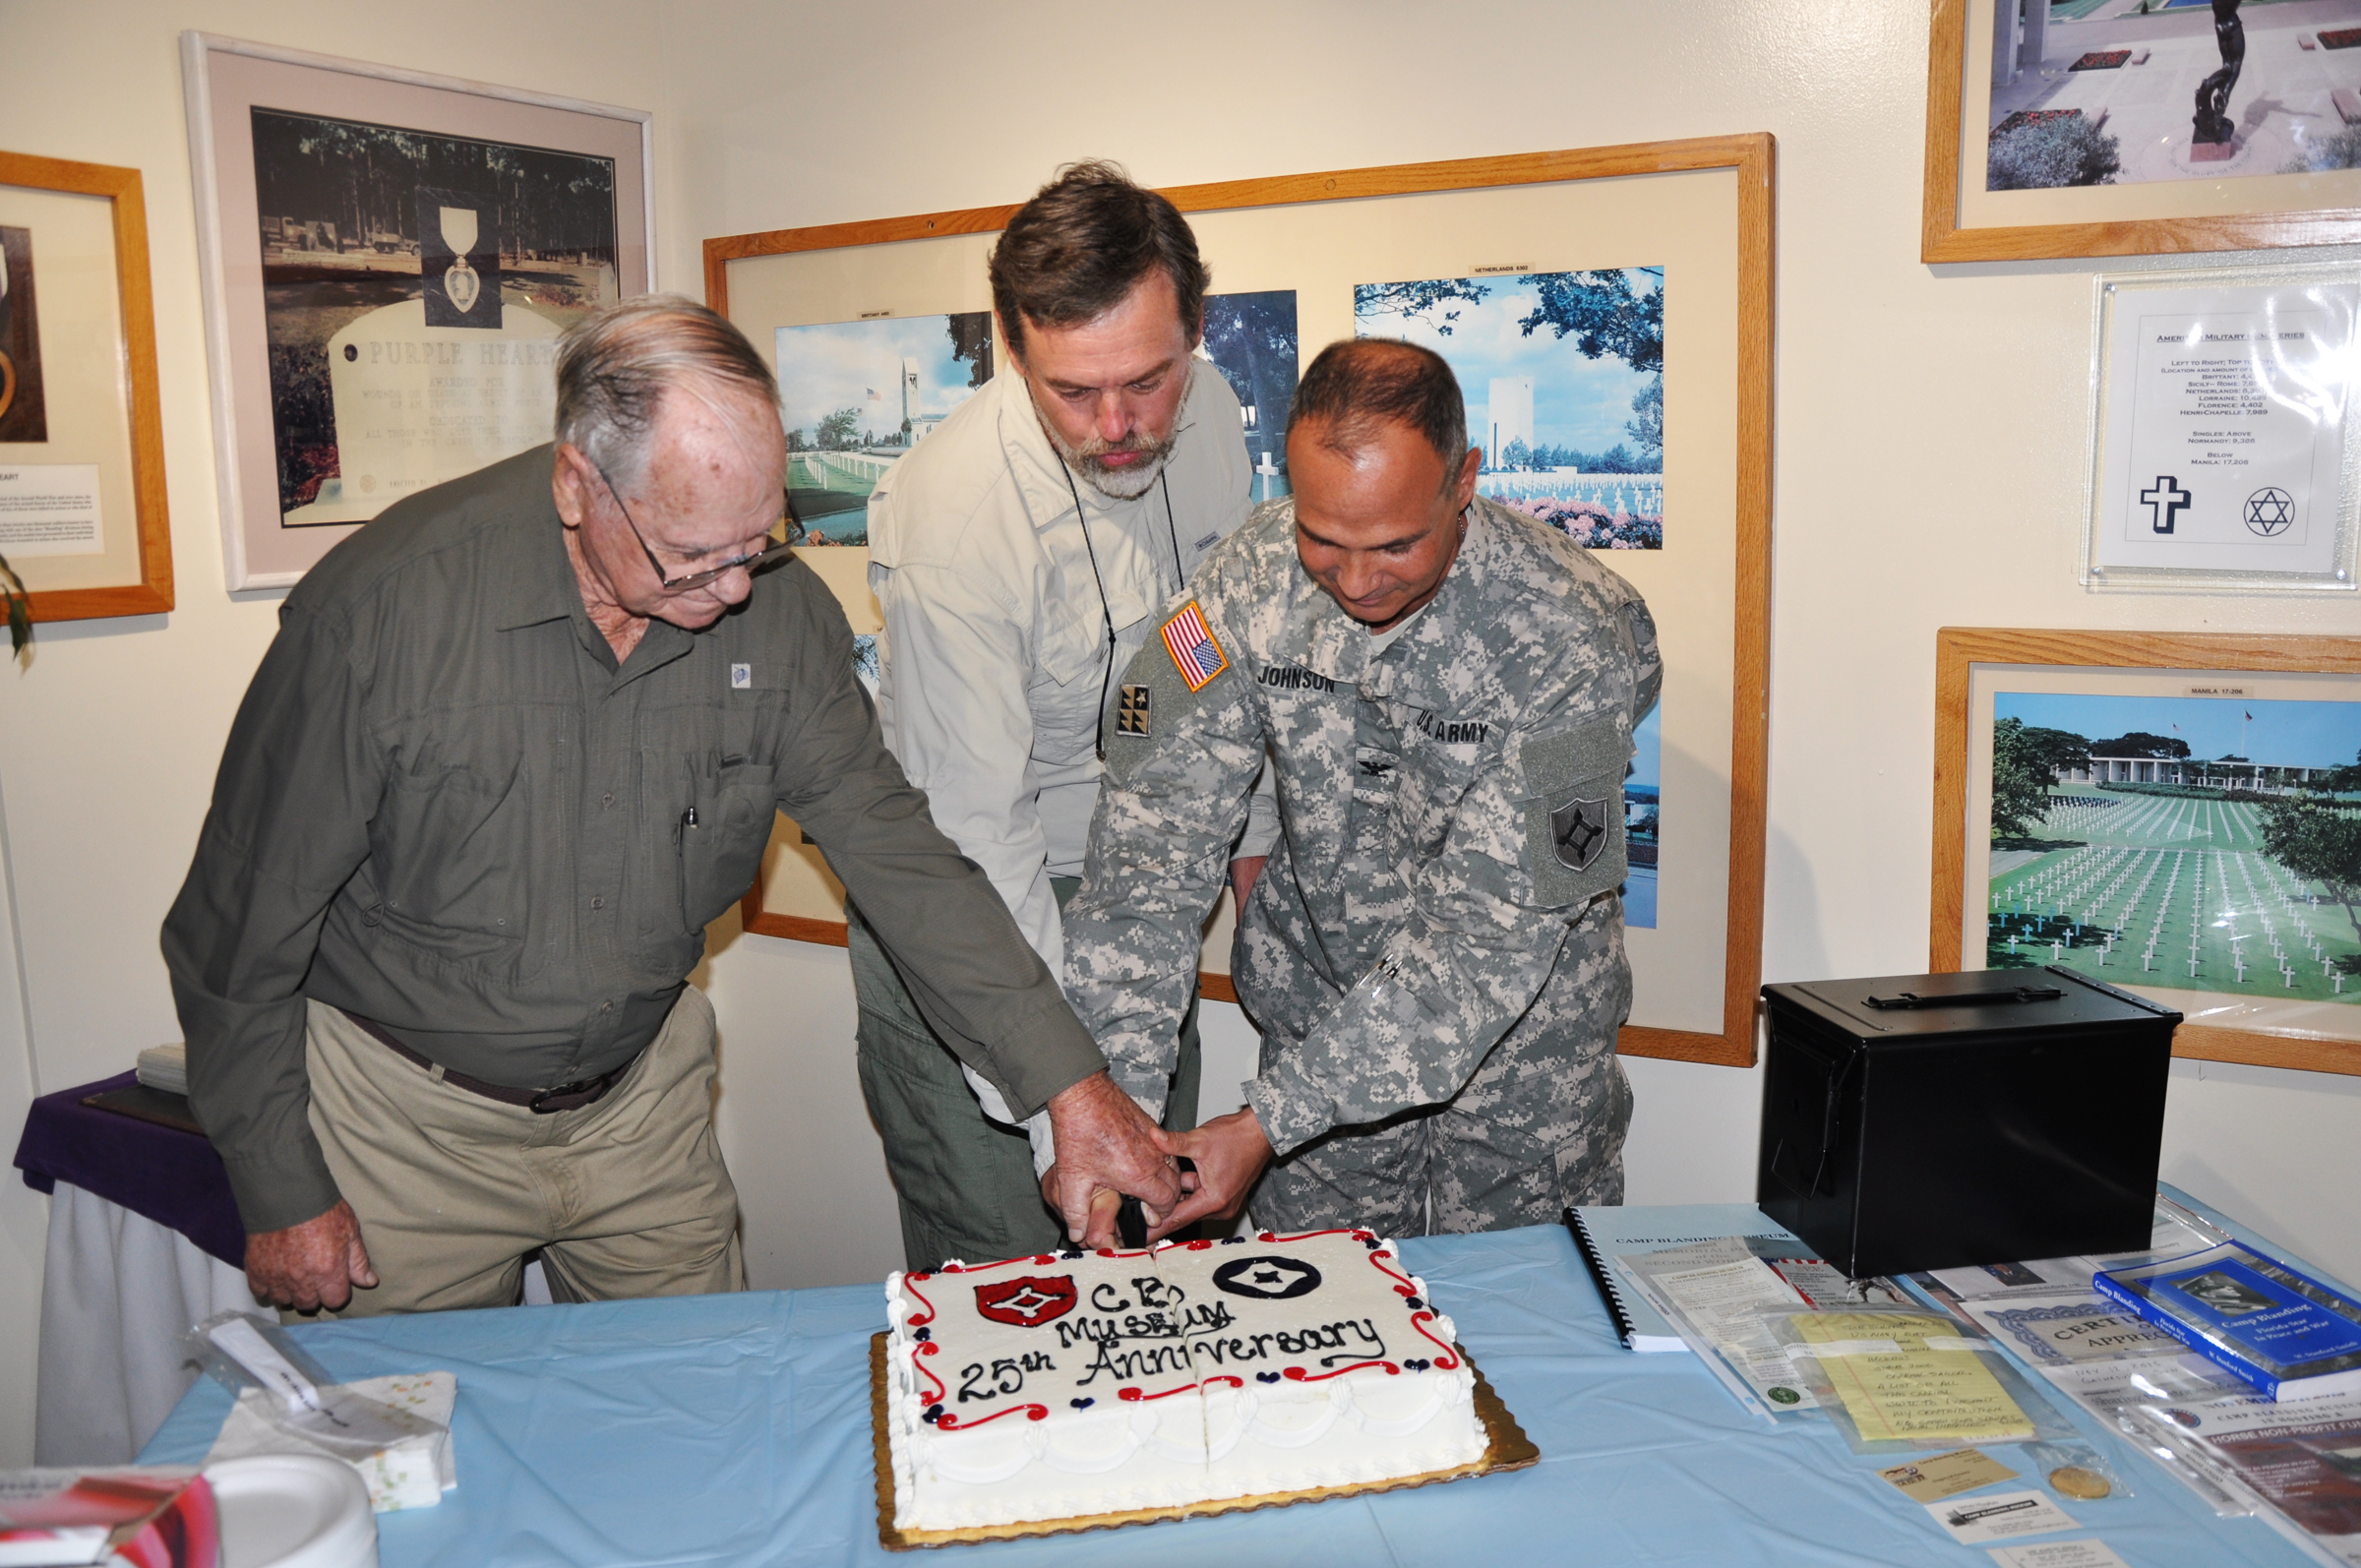 ) Rodney Hall, from left; Greg Parsons and Col. Matt Johnson cut a cake for the 25th anniversary of Camp Blanding's Museum and Memorial Gardens.